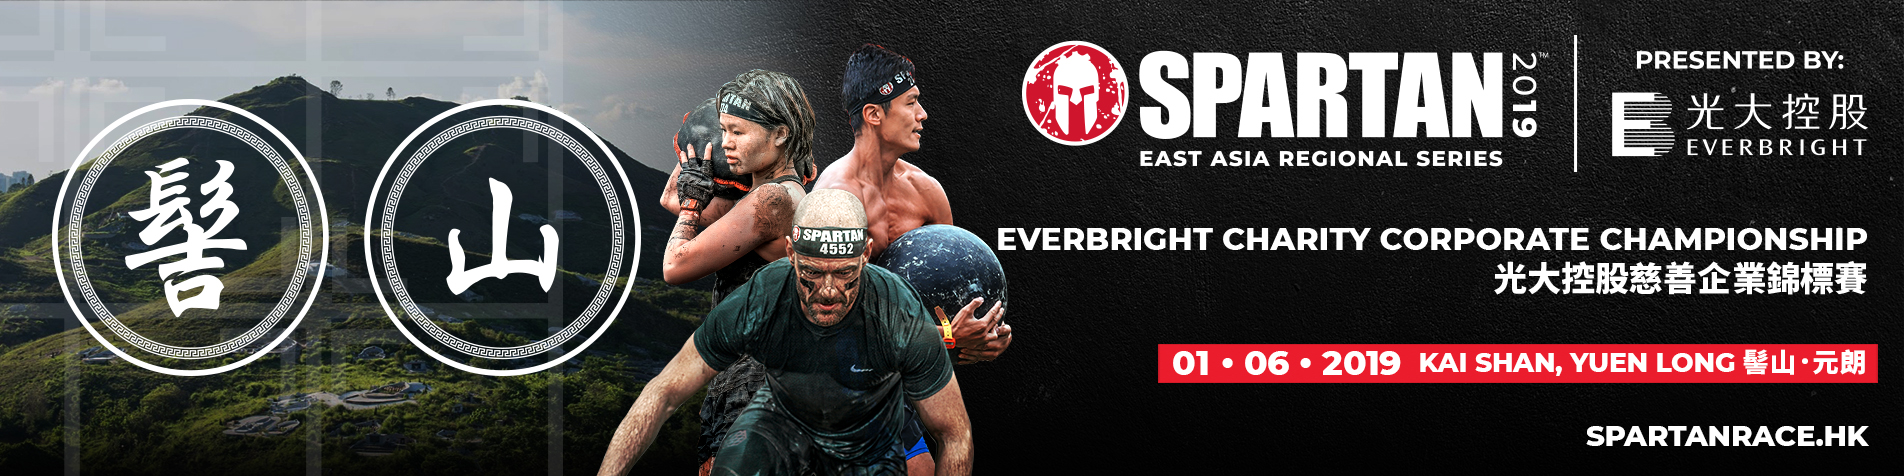 2019 Spartan Everbright Corporate Championship - Orbis